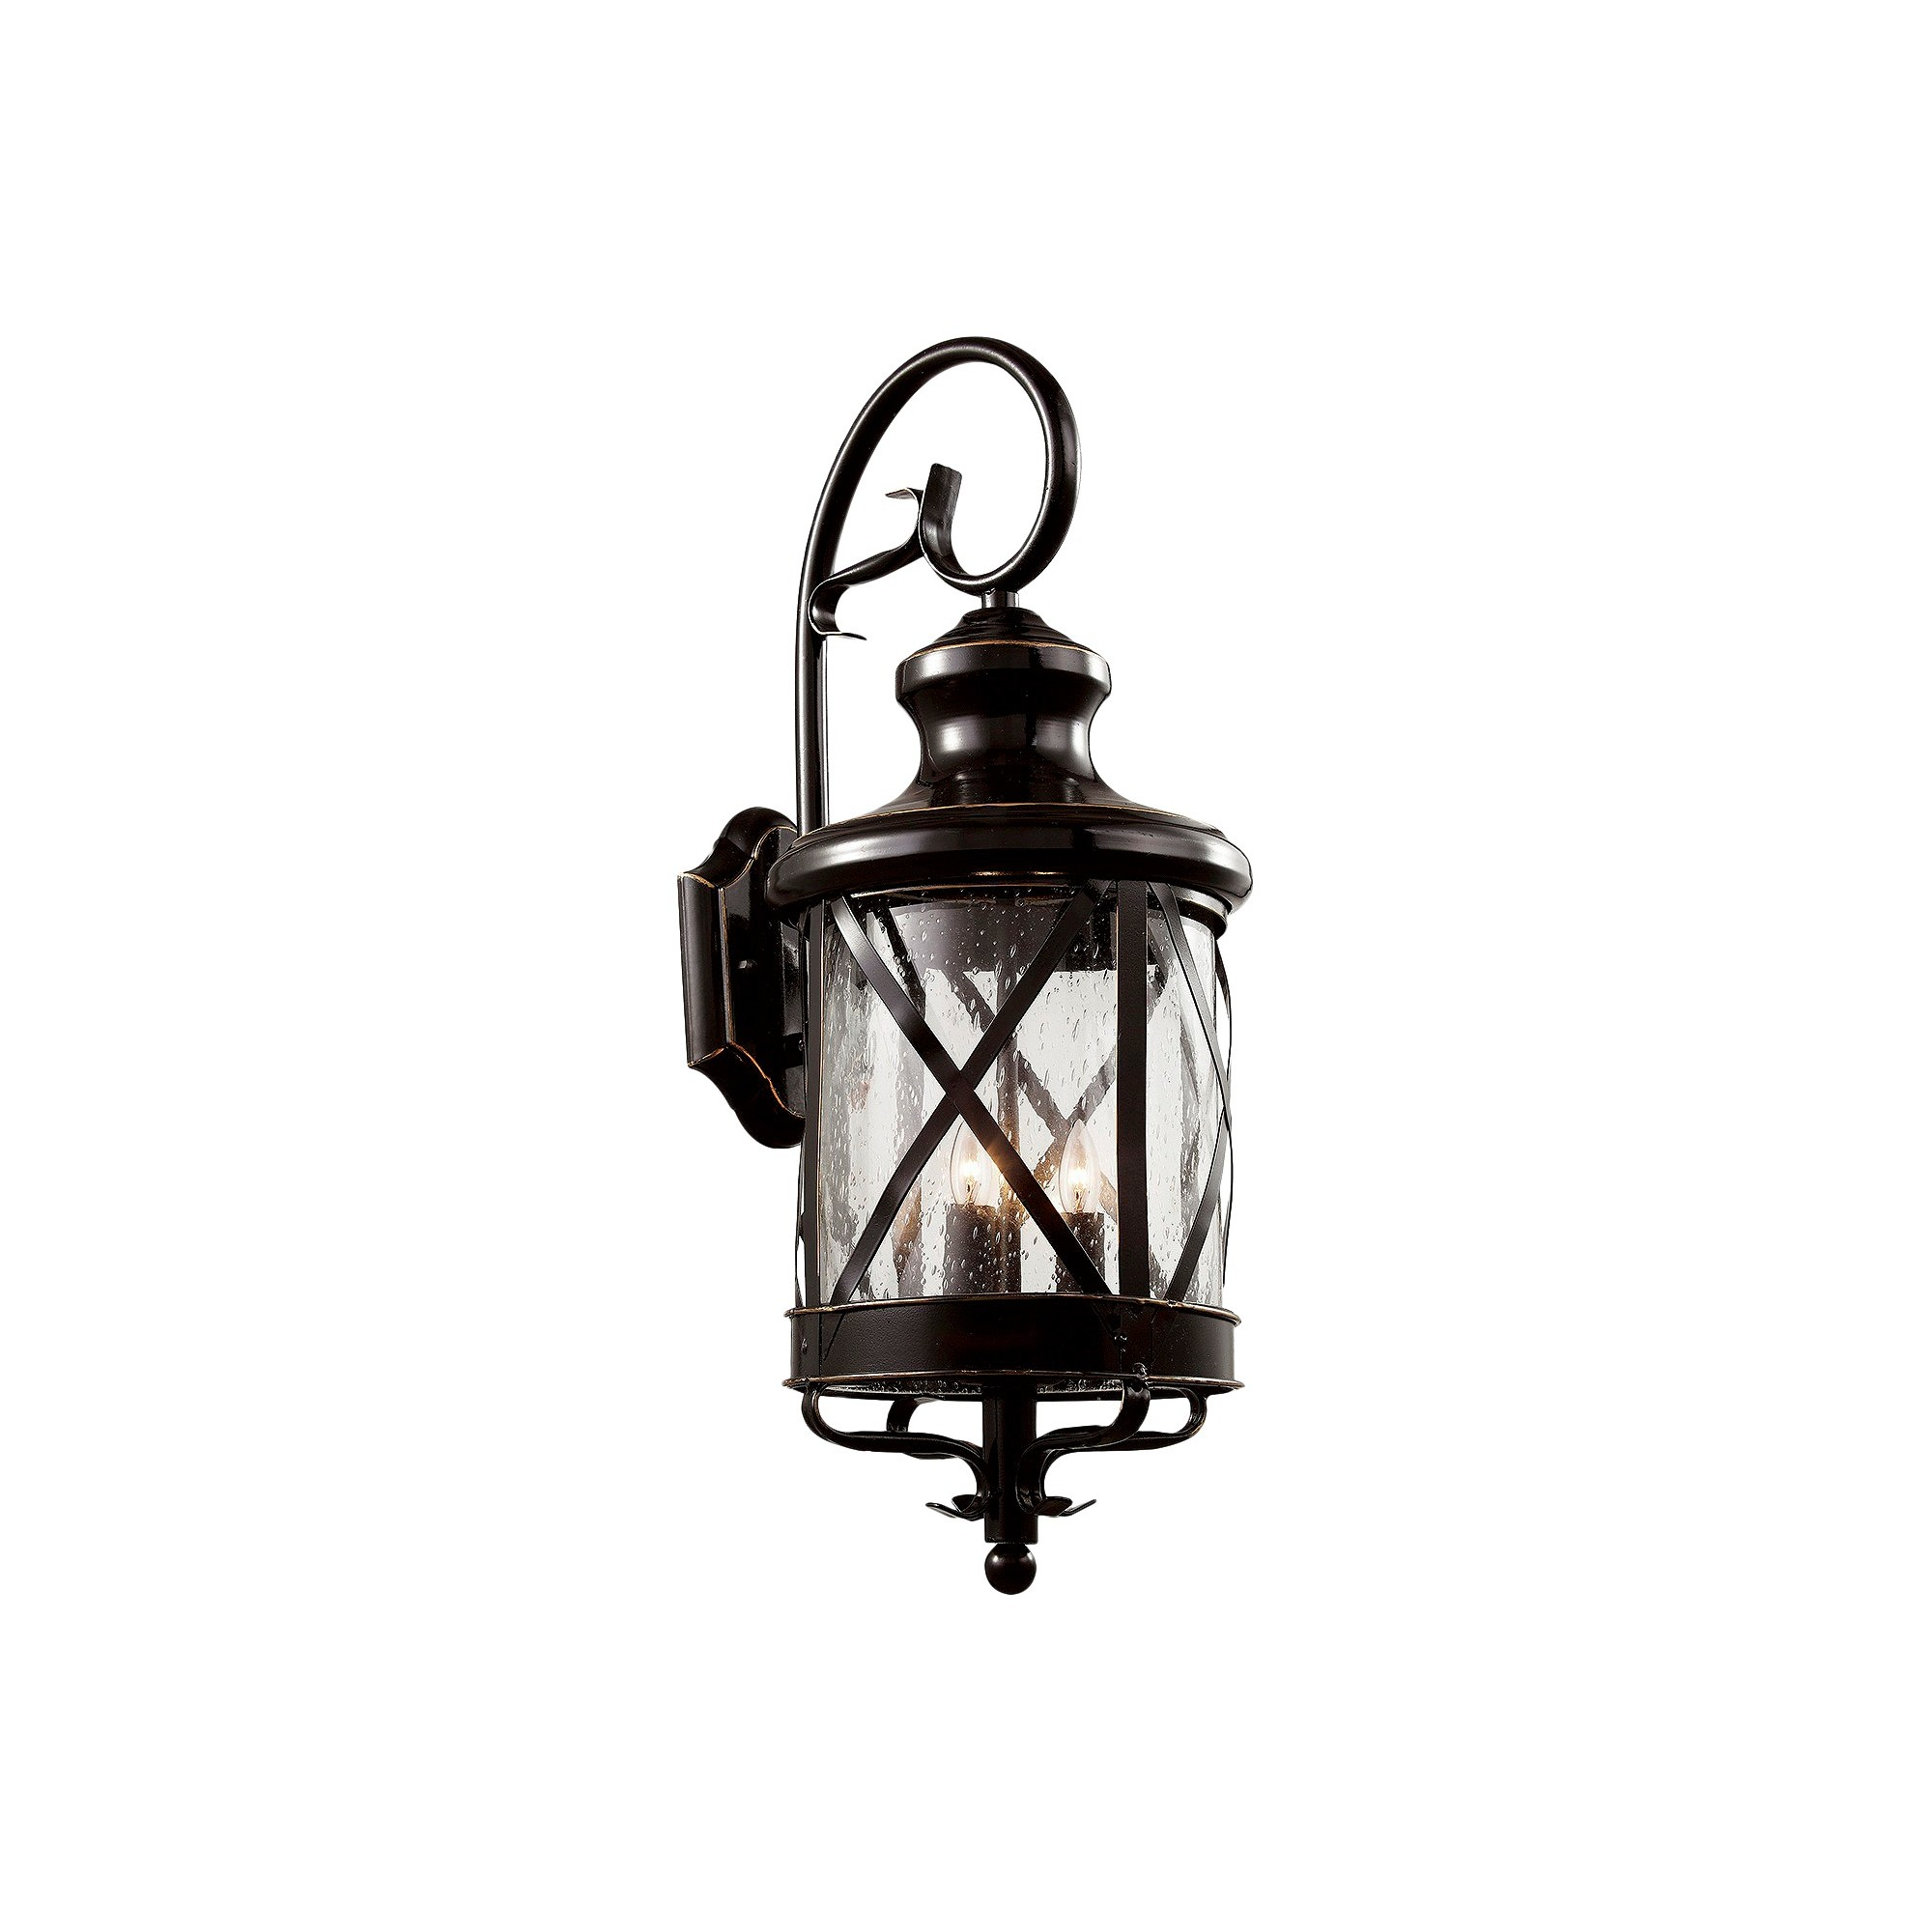 Tennessee outdoor wall light in bronze bronze brown outdoor